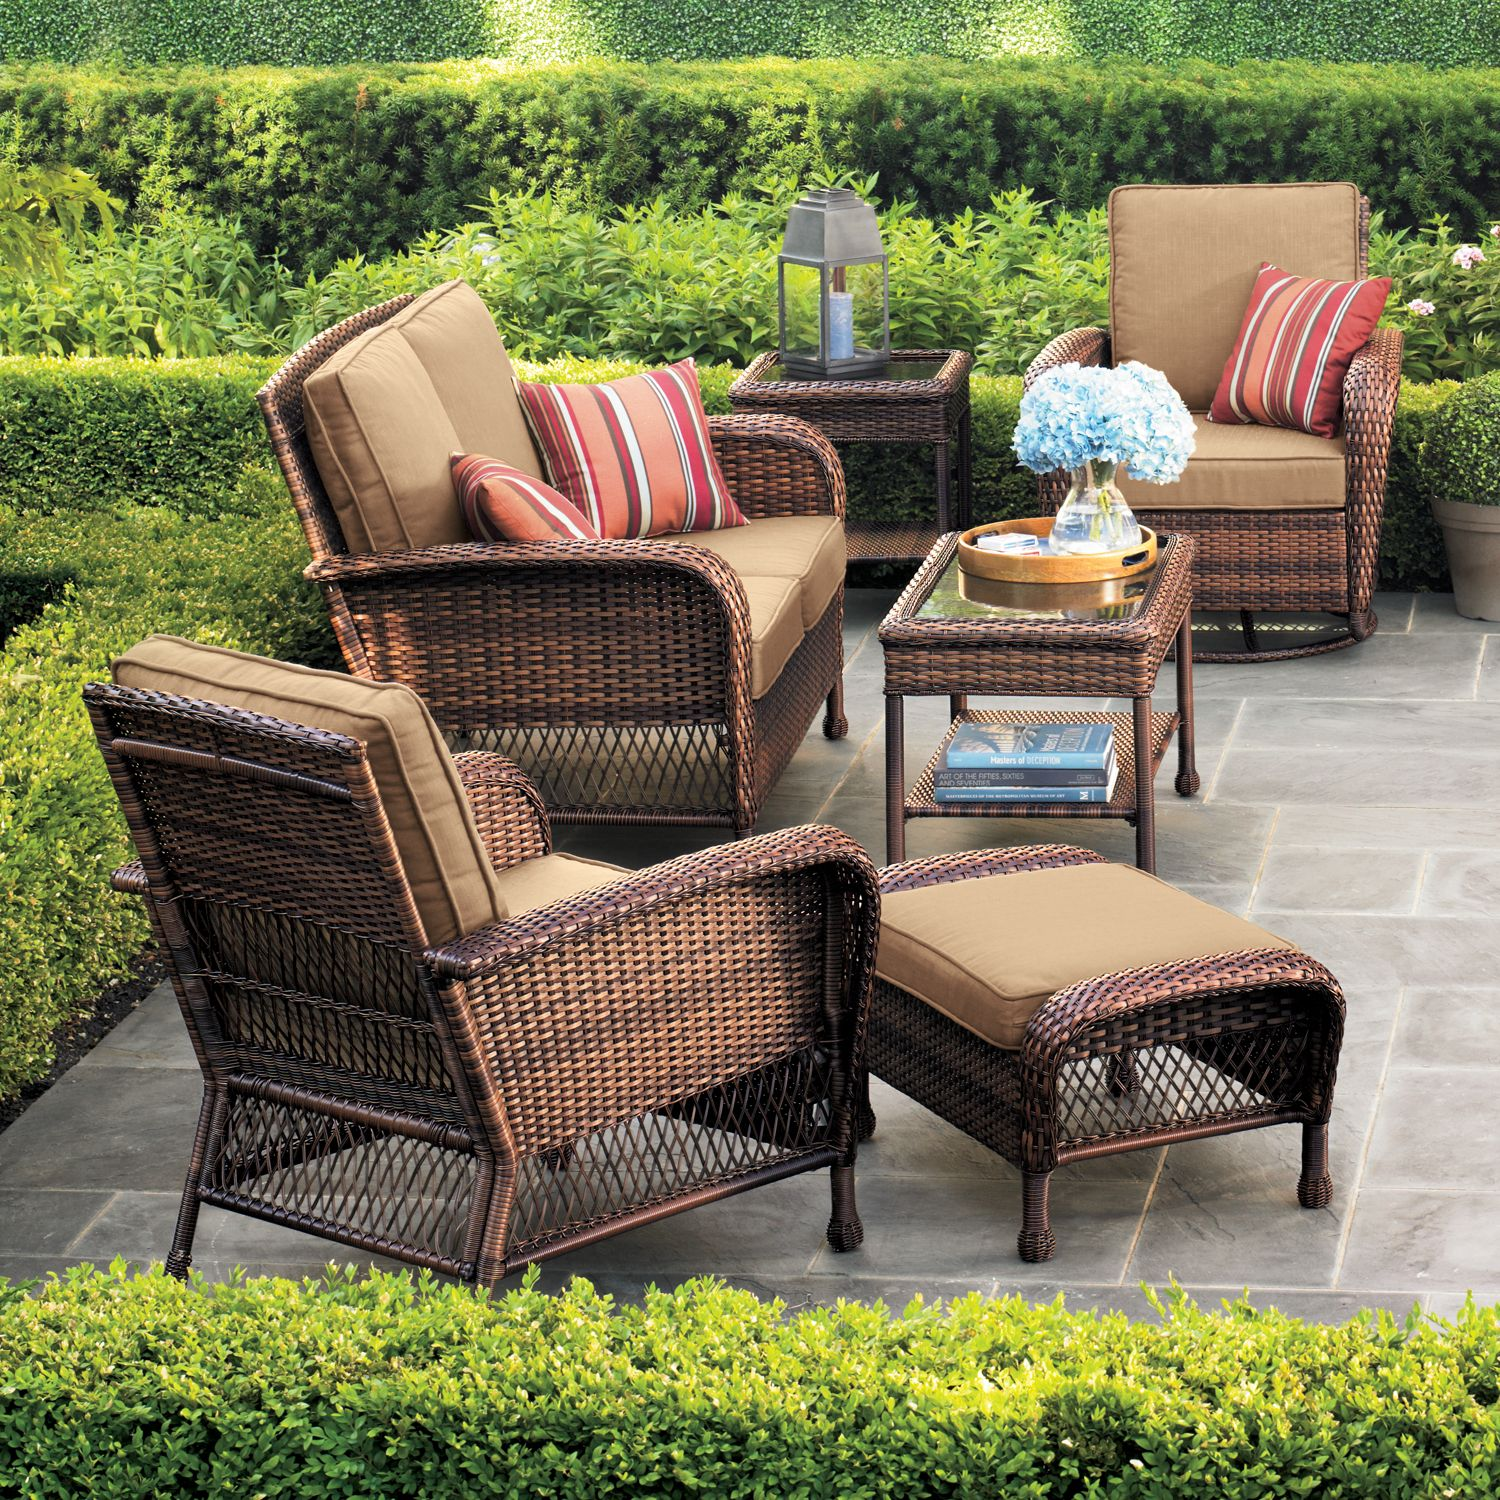 Madera Patio Furniture Collection